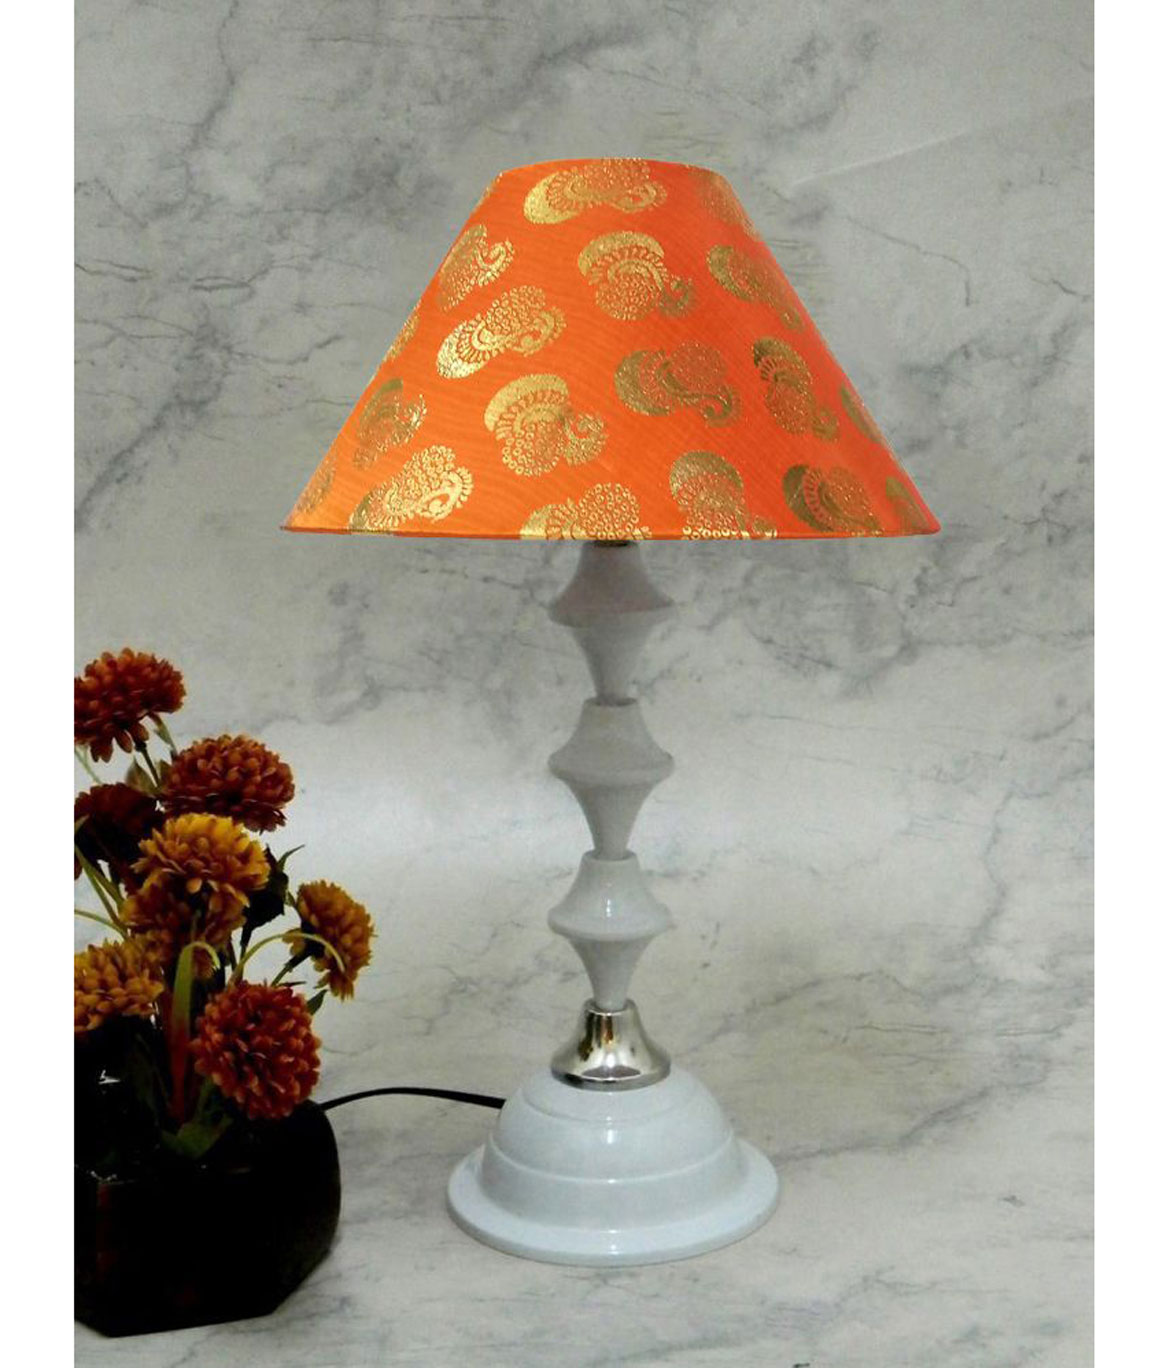 RDC White Silver Table Lamp with 10 Inches Round Orange Golden Design Lamp Shade